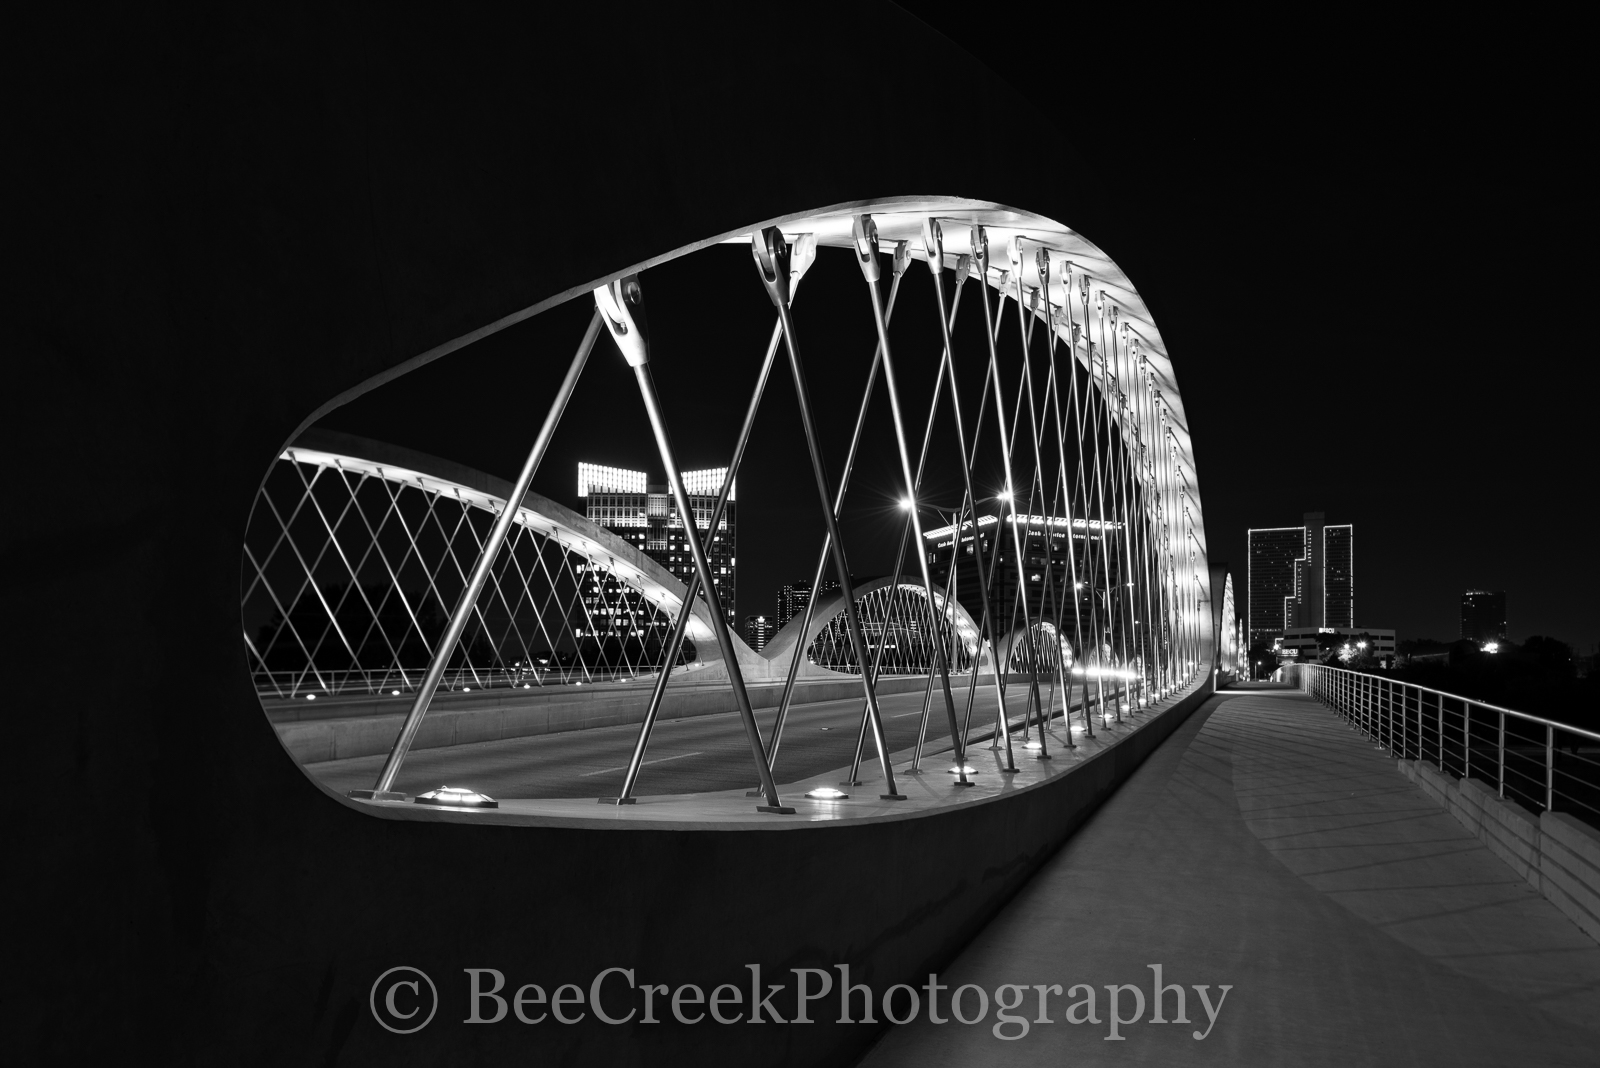 Fort Worth Seventh Street Bridge BW- This is a bw version of the in Seventh Street Bridge in Fort Worth Texas. The city...